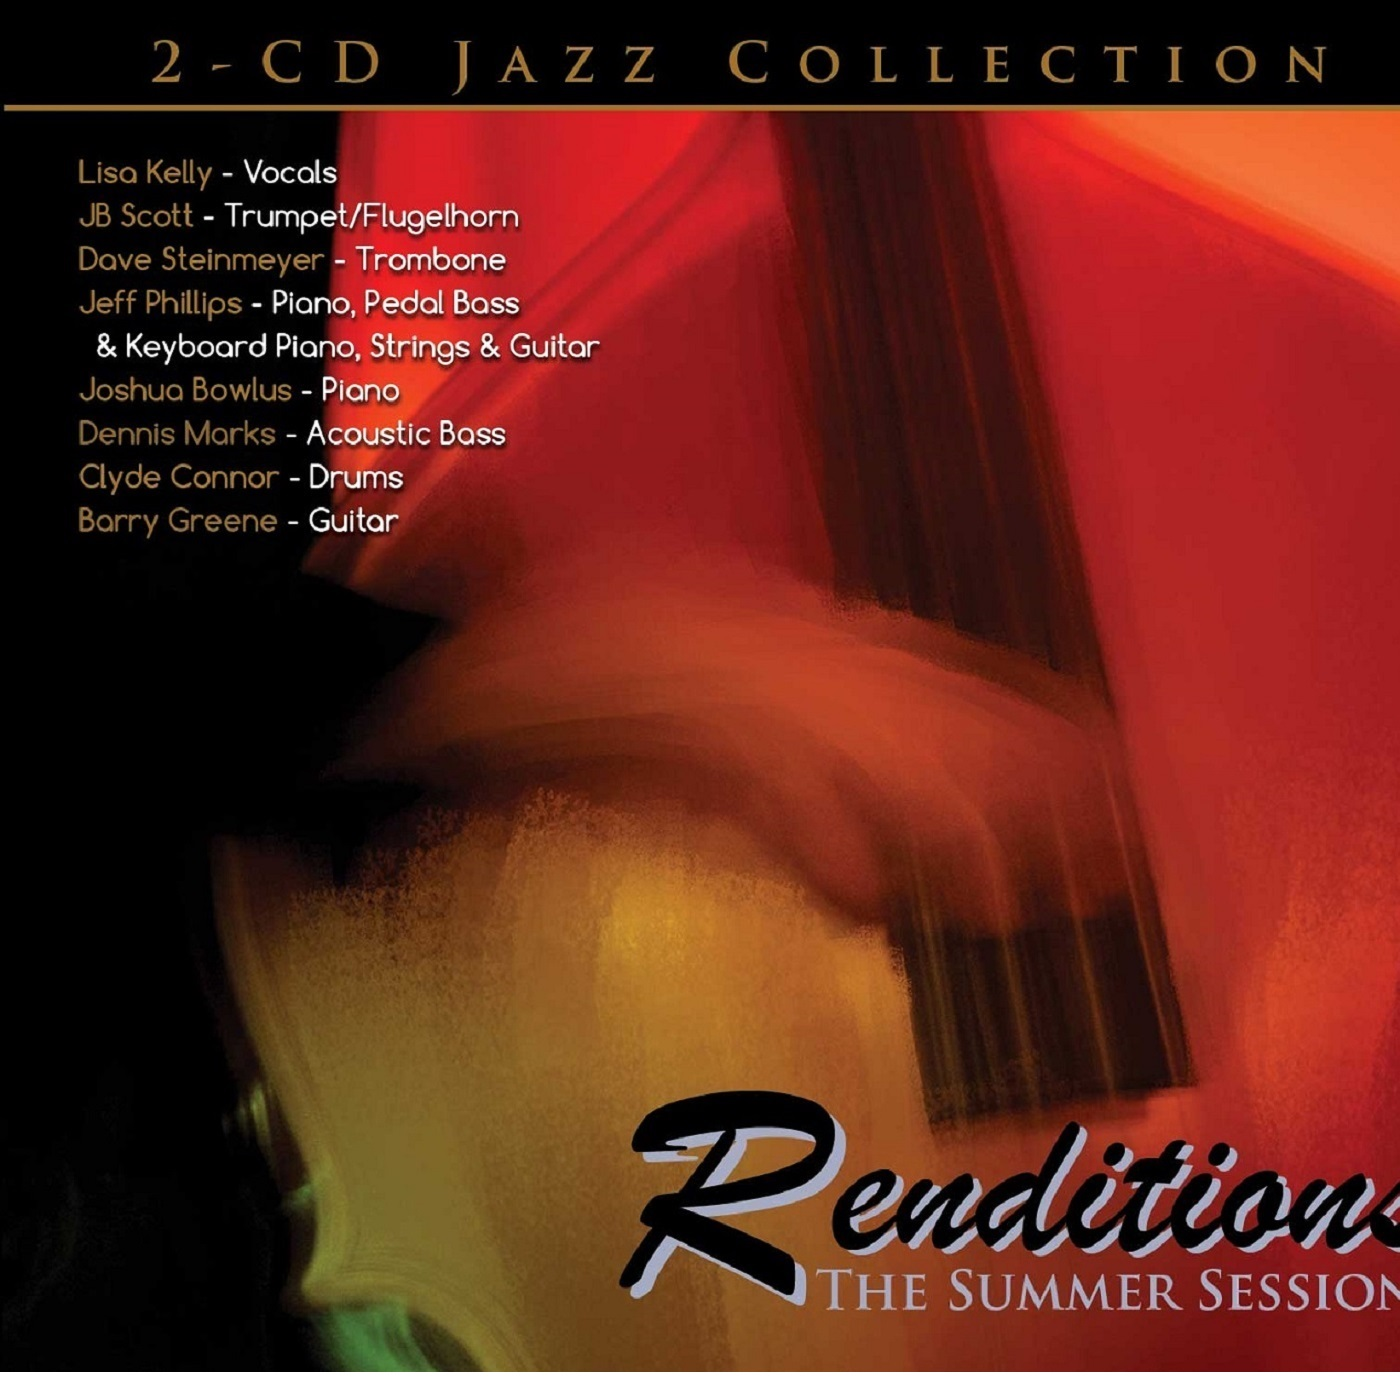 Renditions, the Summer Sessions cd